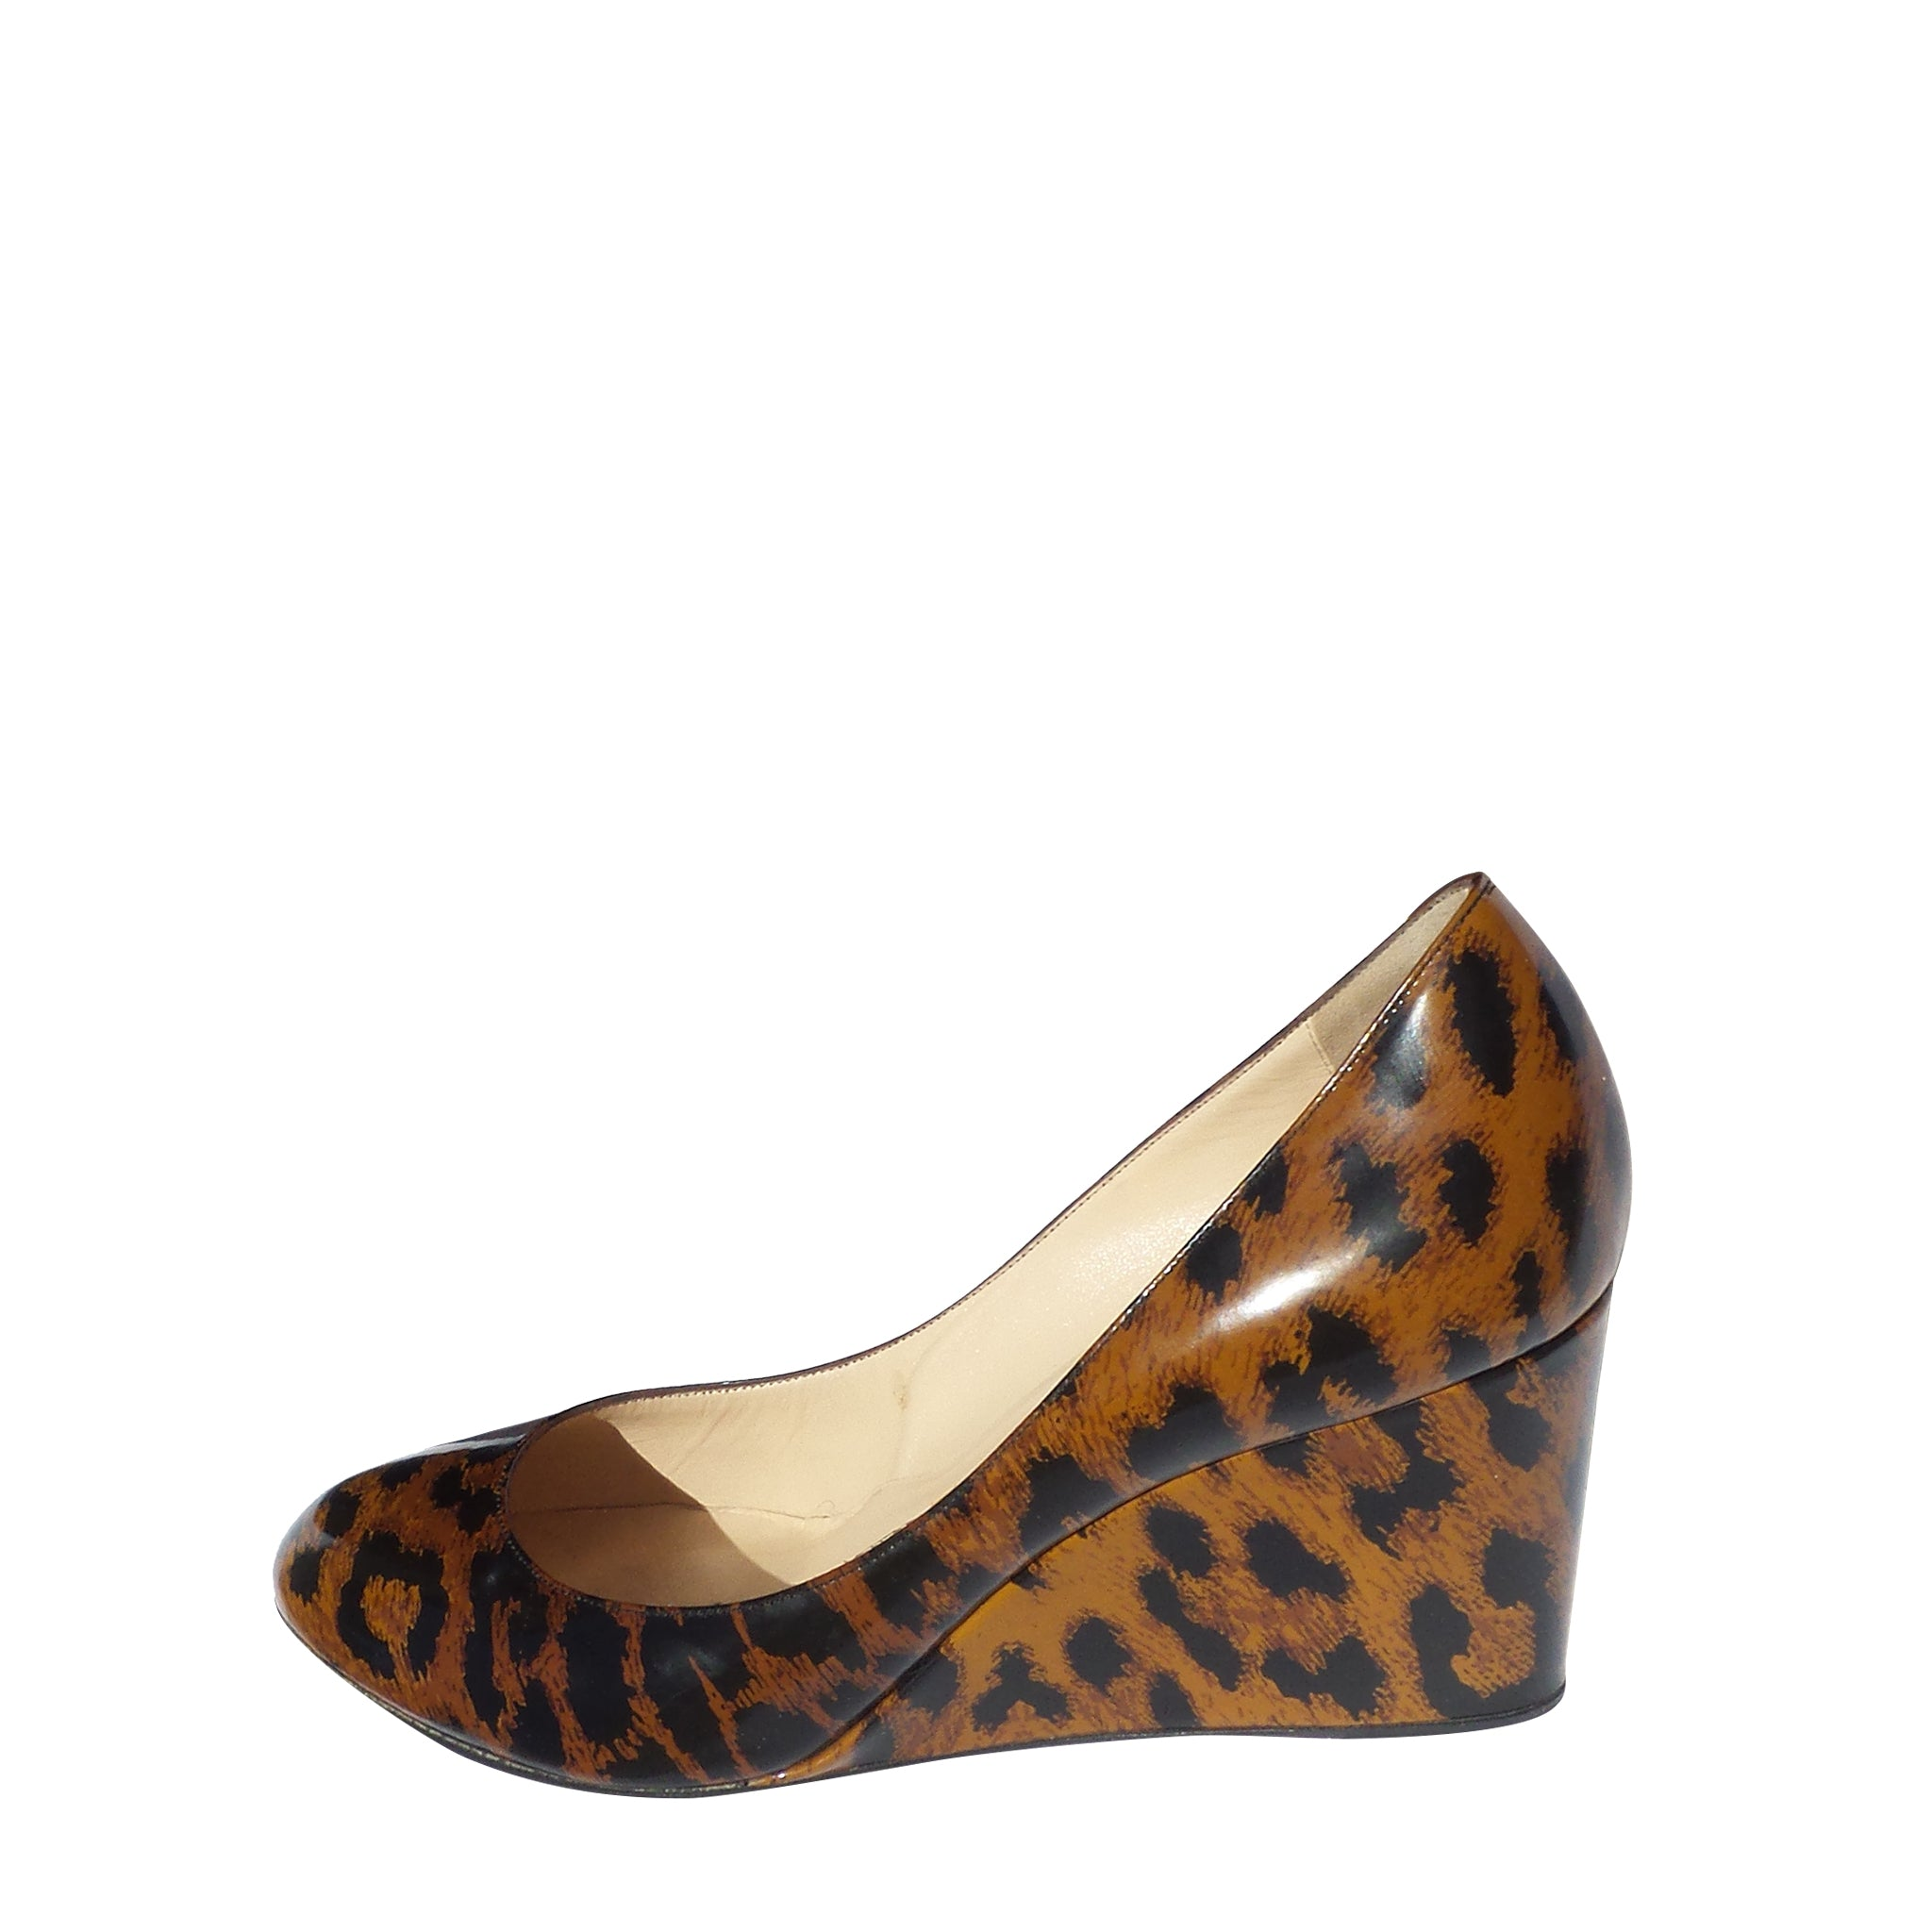 CHRISTIAN LOUBOUTIN Brown Black Leopard Print Patent Leather Wedges 39.5